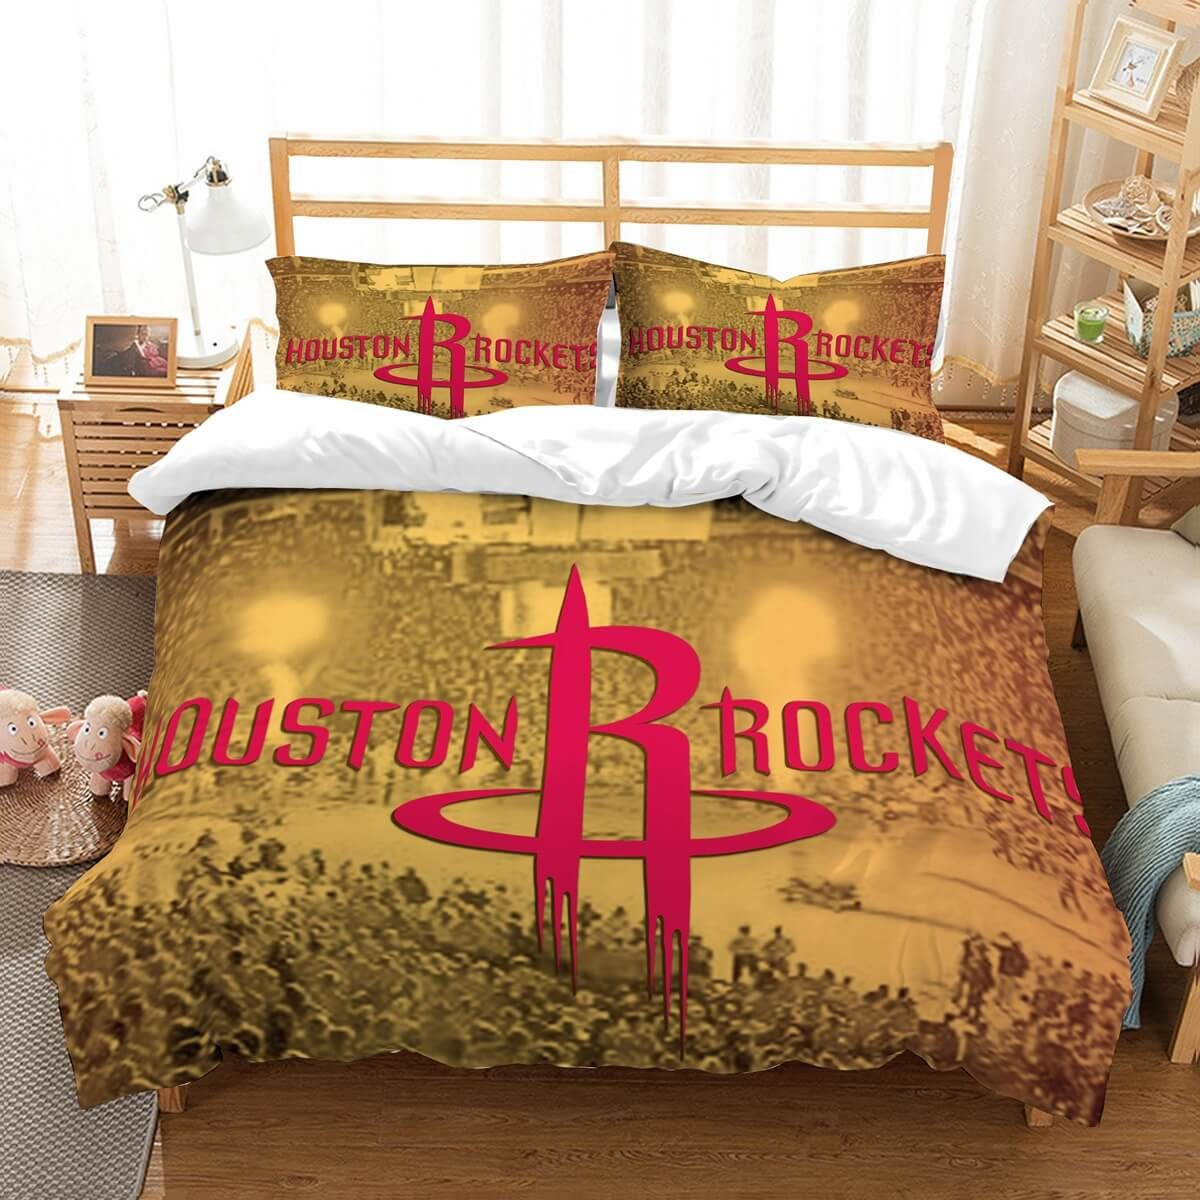 Customize Houston Rockets Bedding Set Duvet Cover Bedroom Bedlinen